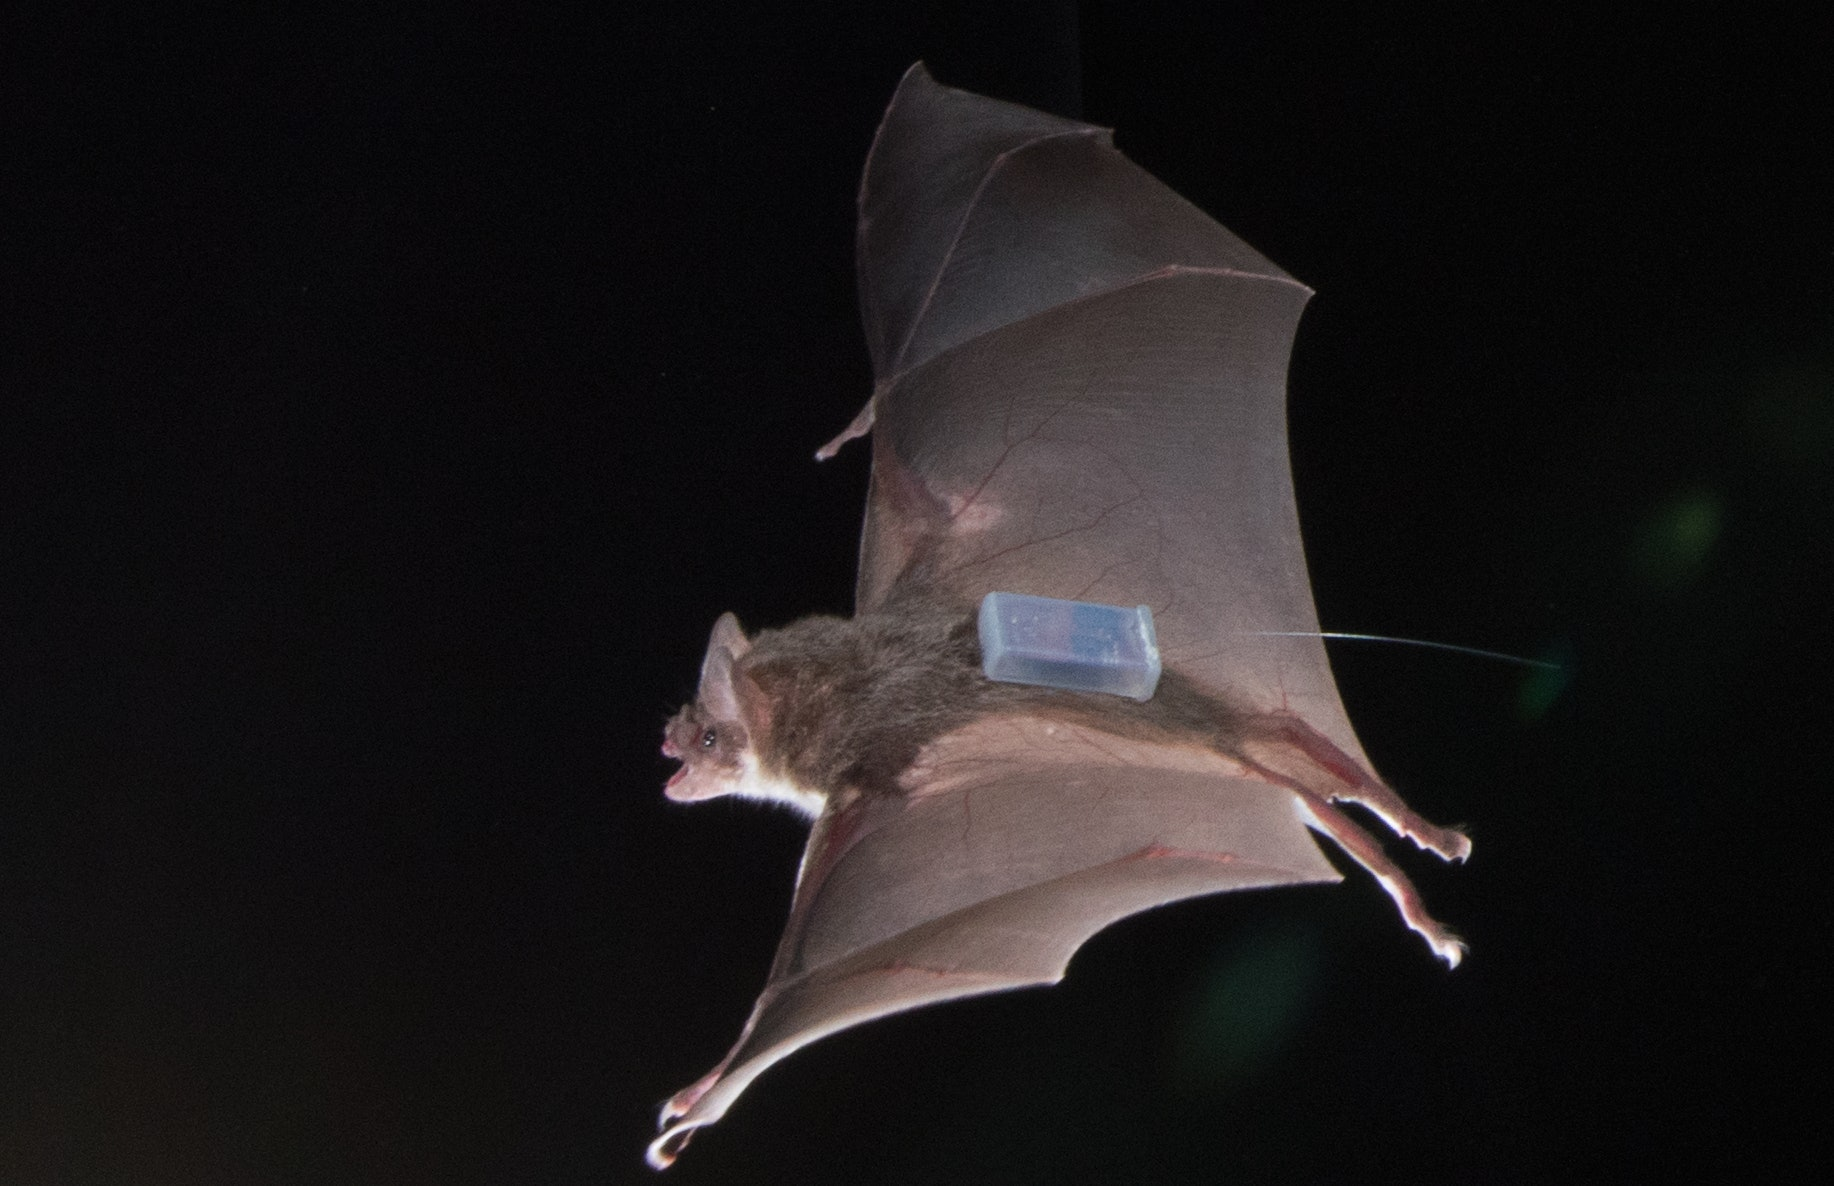 Researchers used high-resolution trackers to keep tabs on the bats' activity